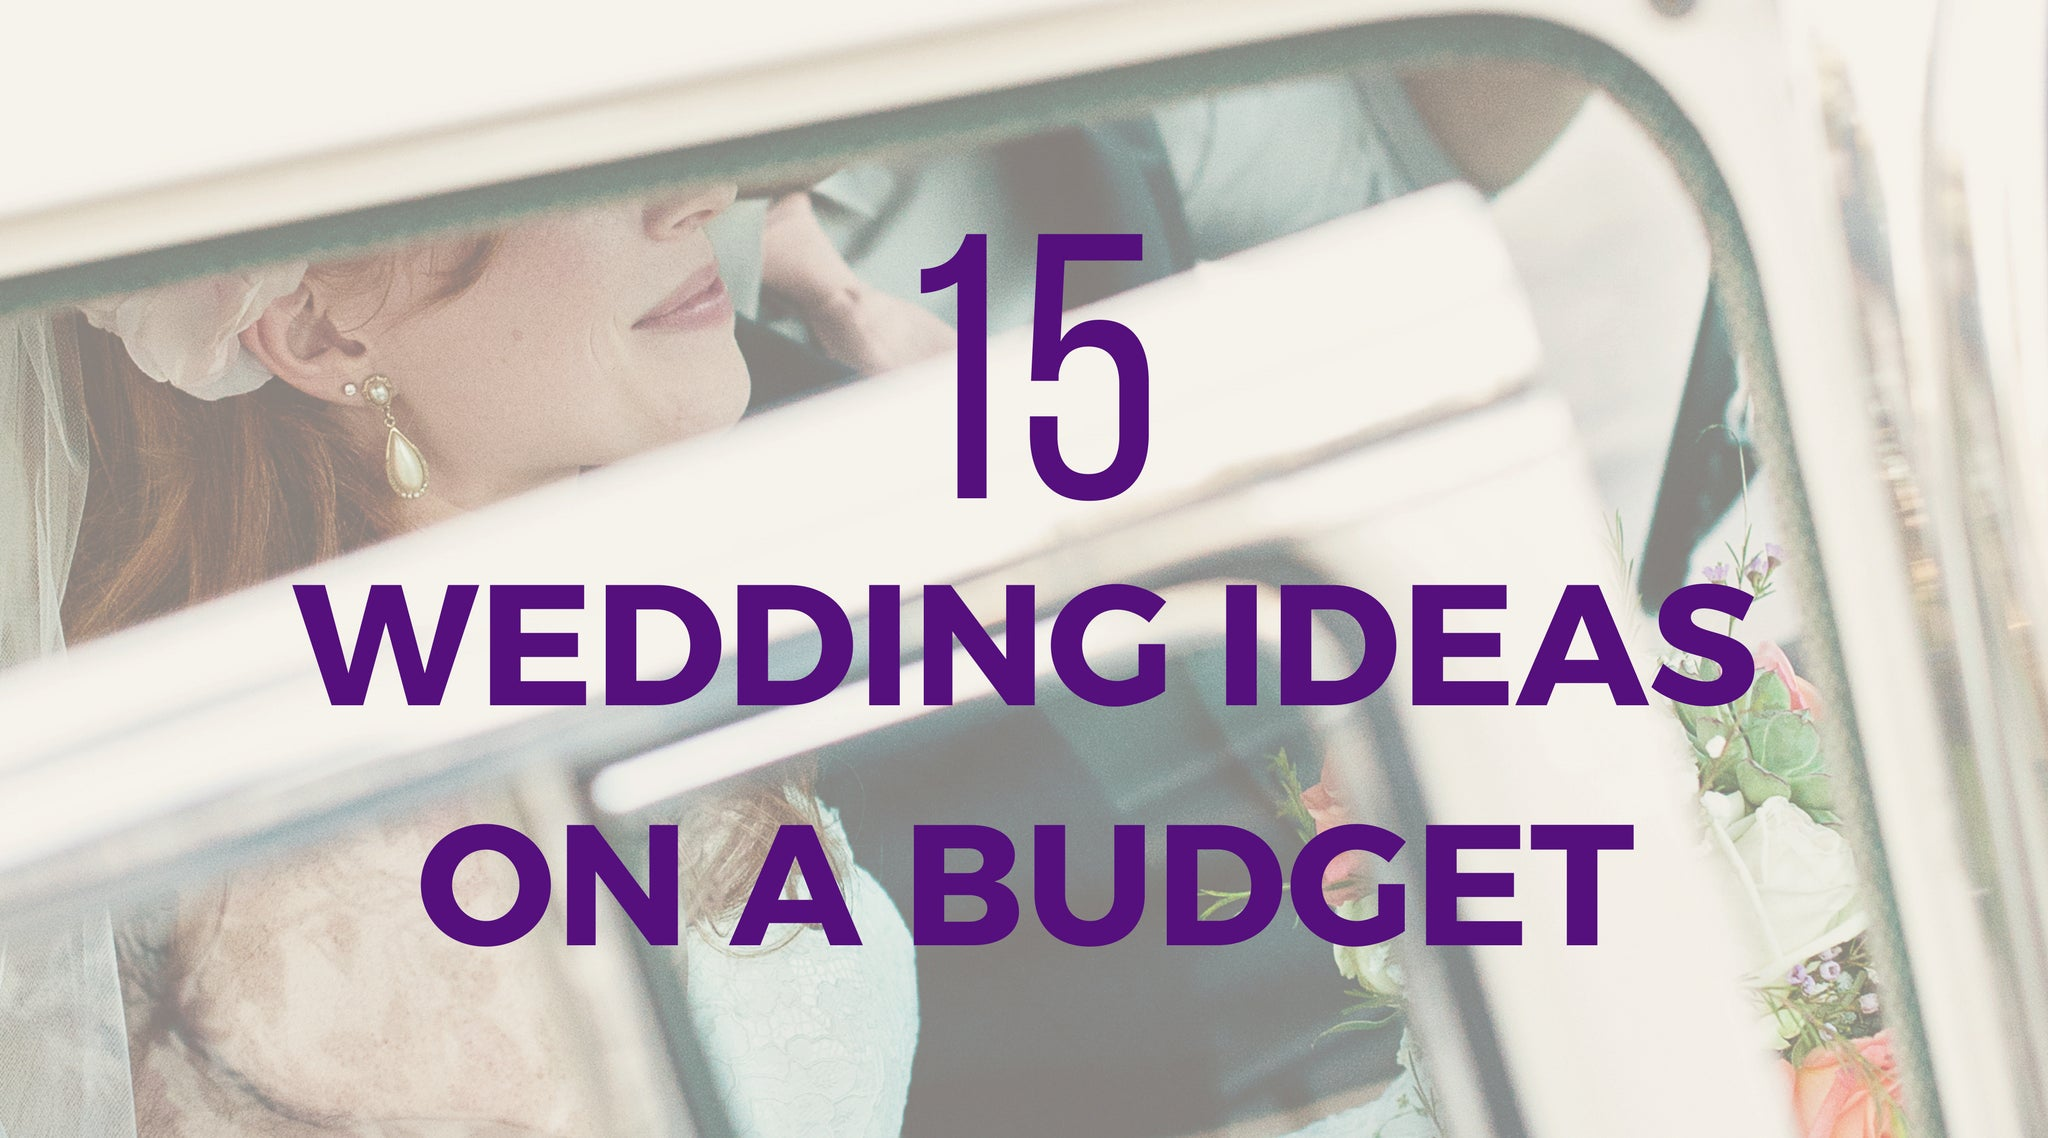 15 Simple and Elegant DIY Wedding Ideas on a Budget - Ella Celebration